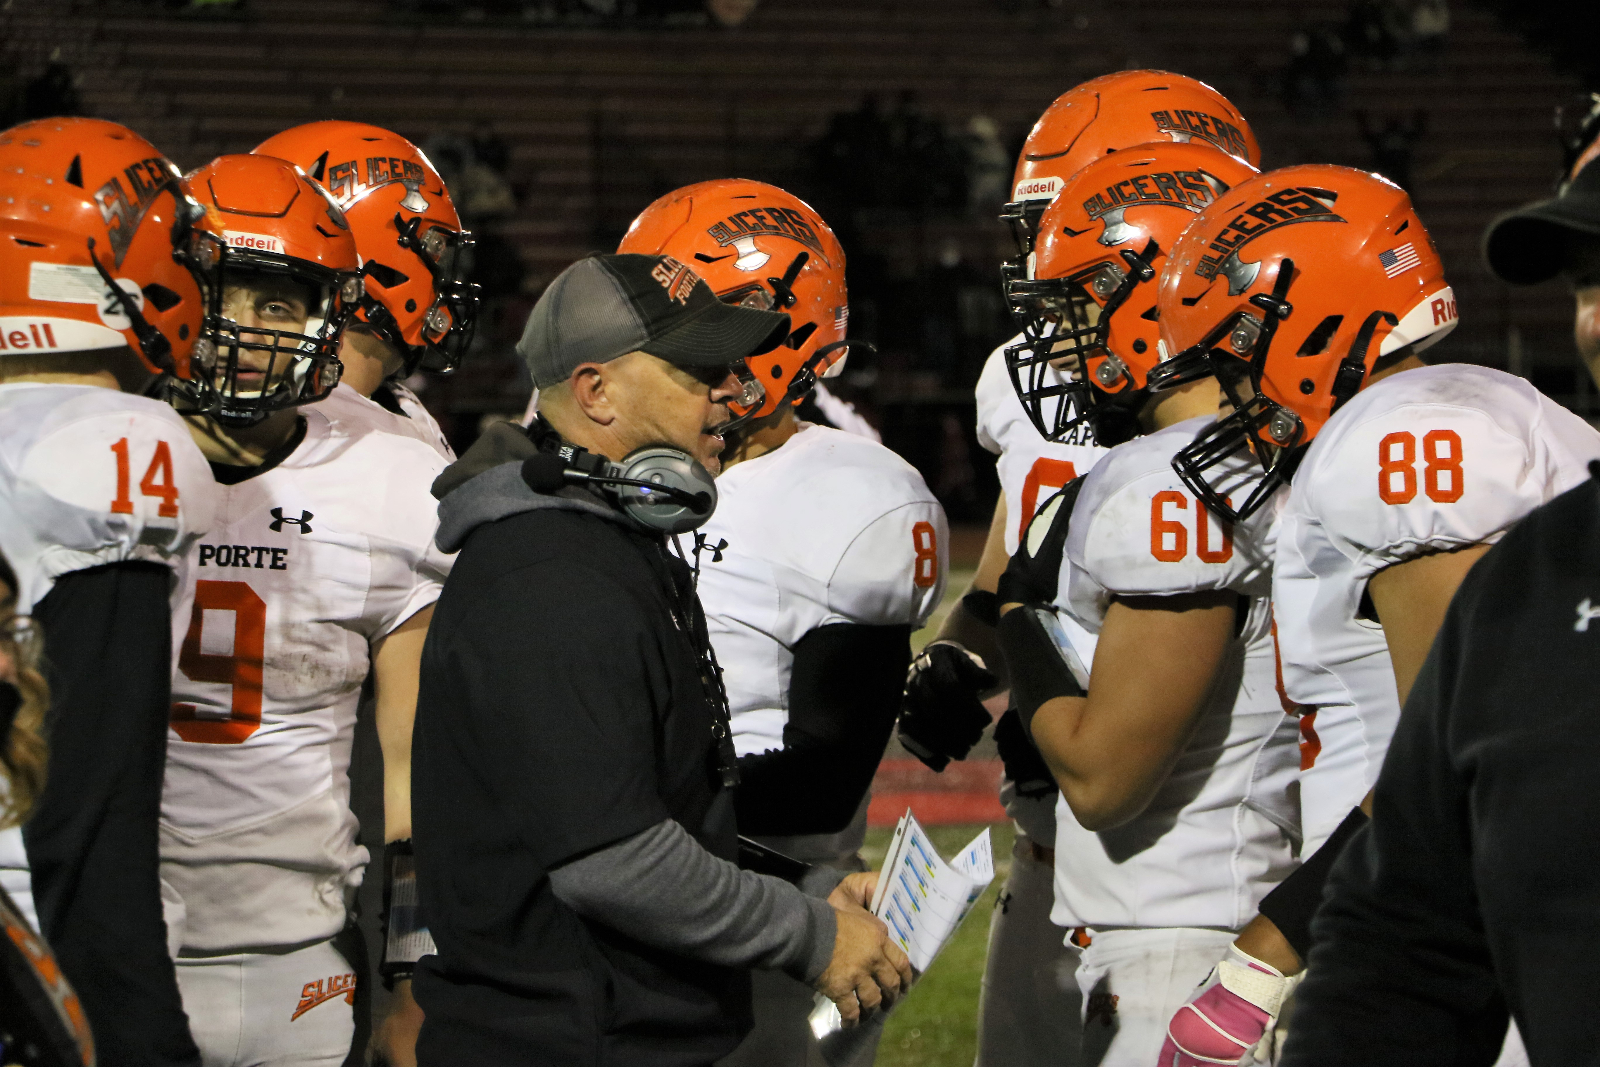 Slicer Sectional Football Ticket Information